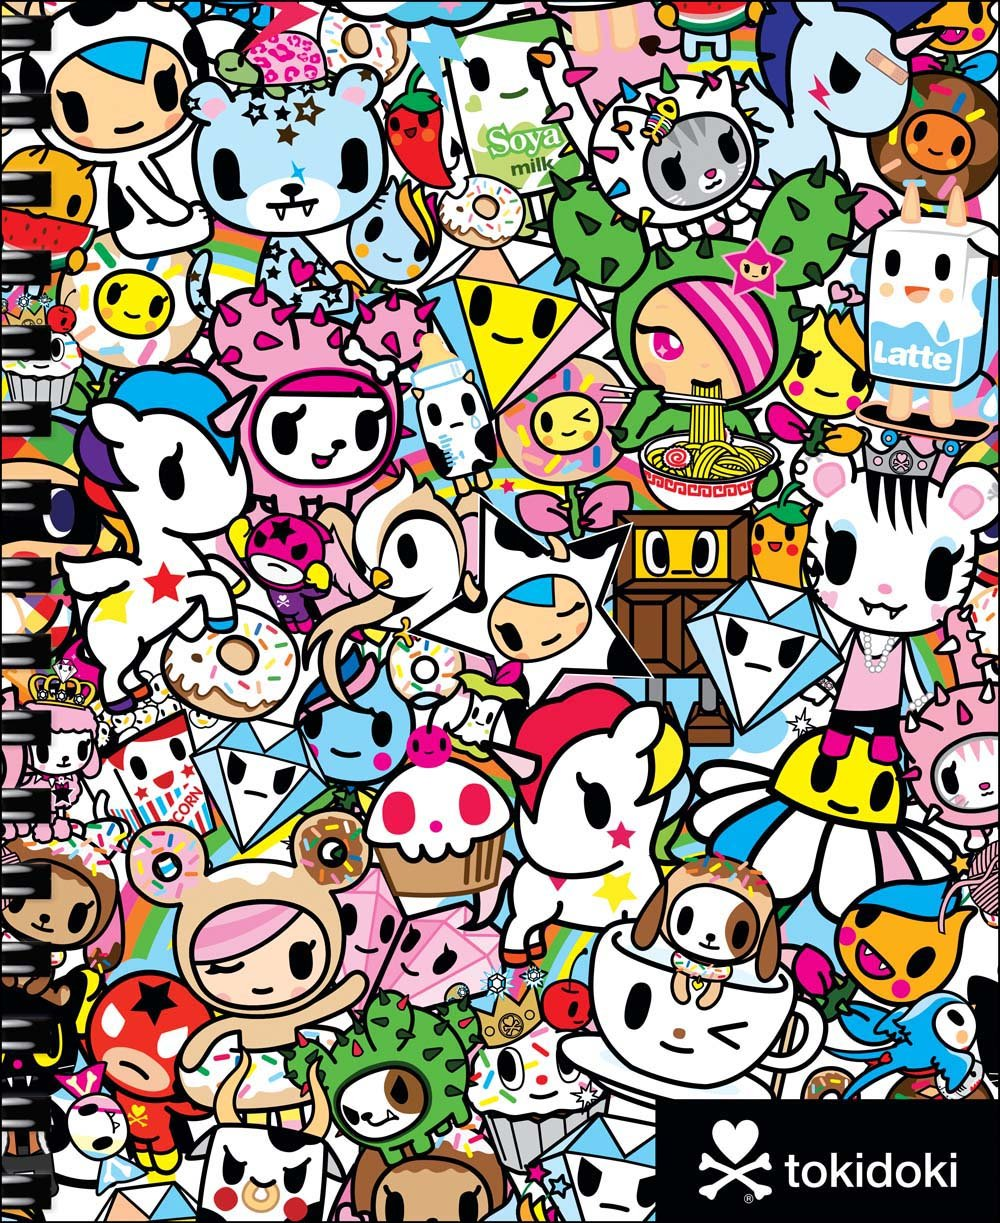 amazon com tokidoki sketchbook with spiral 9781454921899